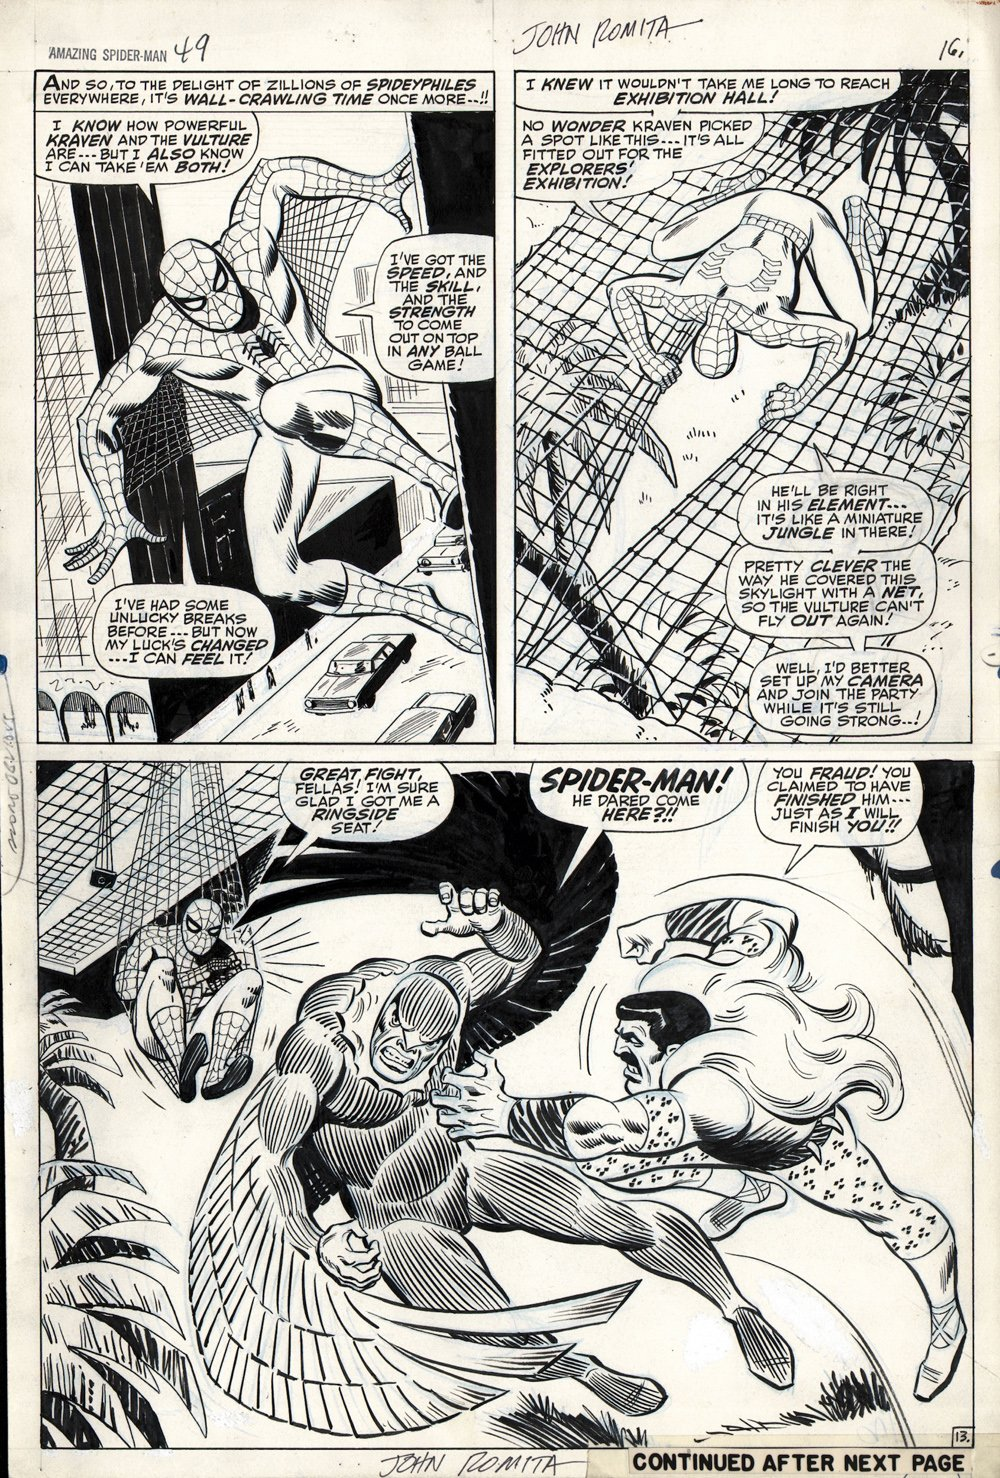 Amazing Spider-Man #49 p 13 (Large Art) SOLD SOLD SOLD!